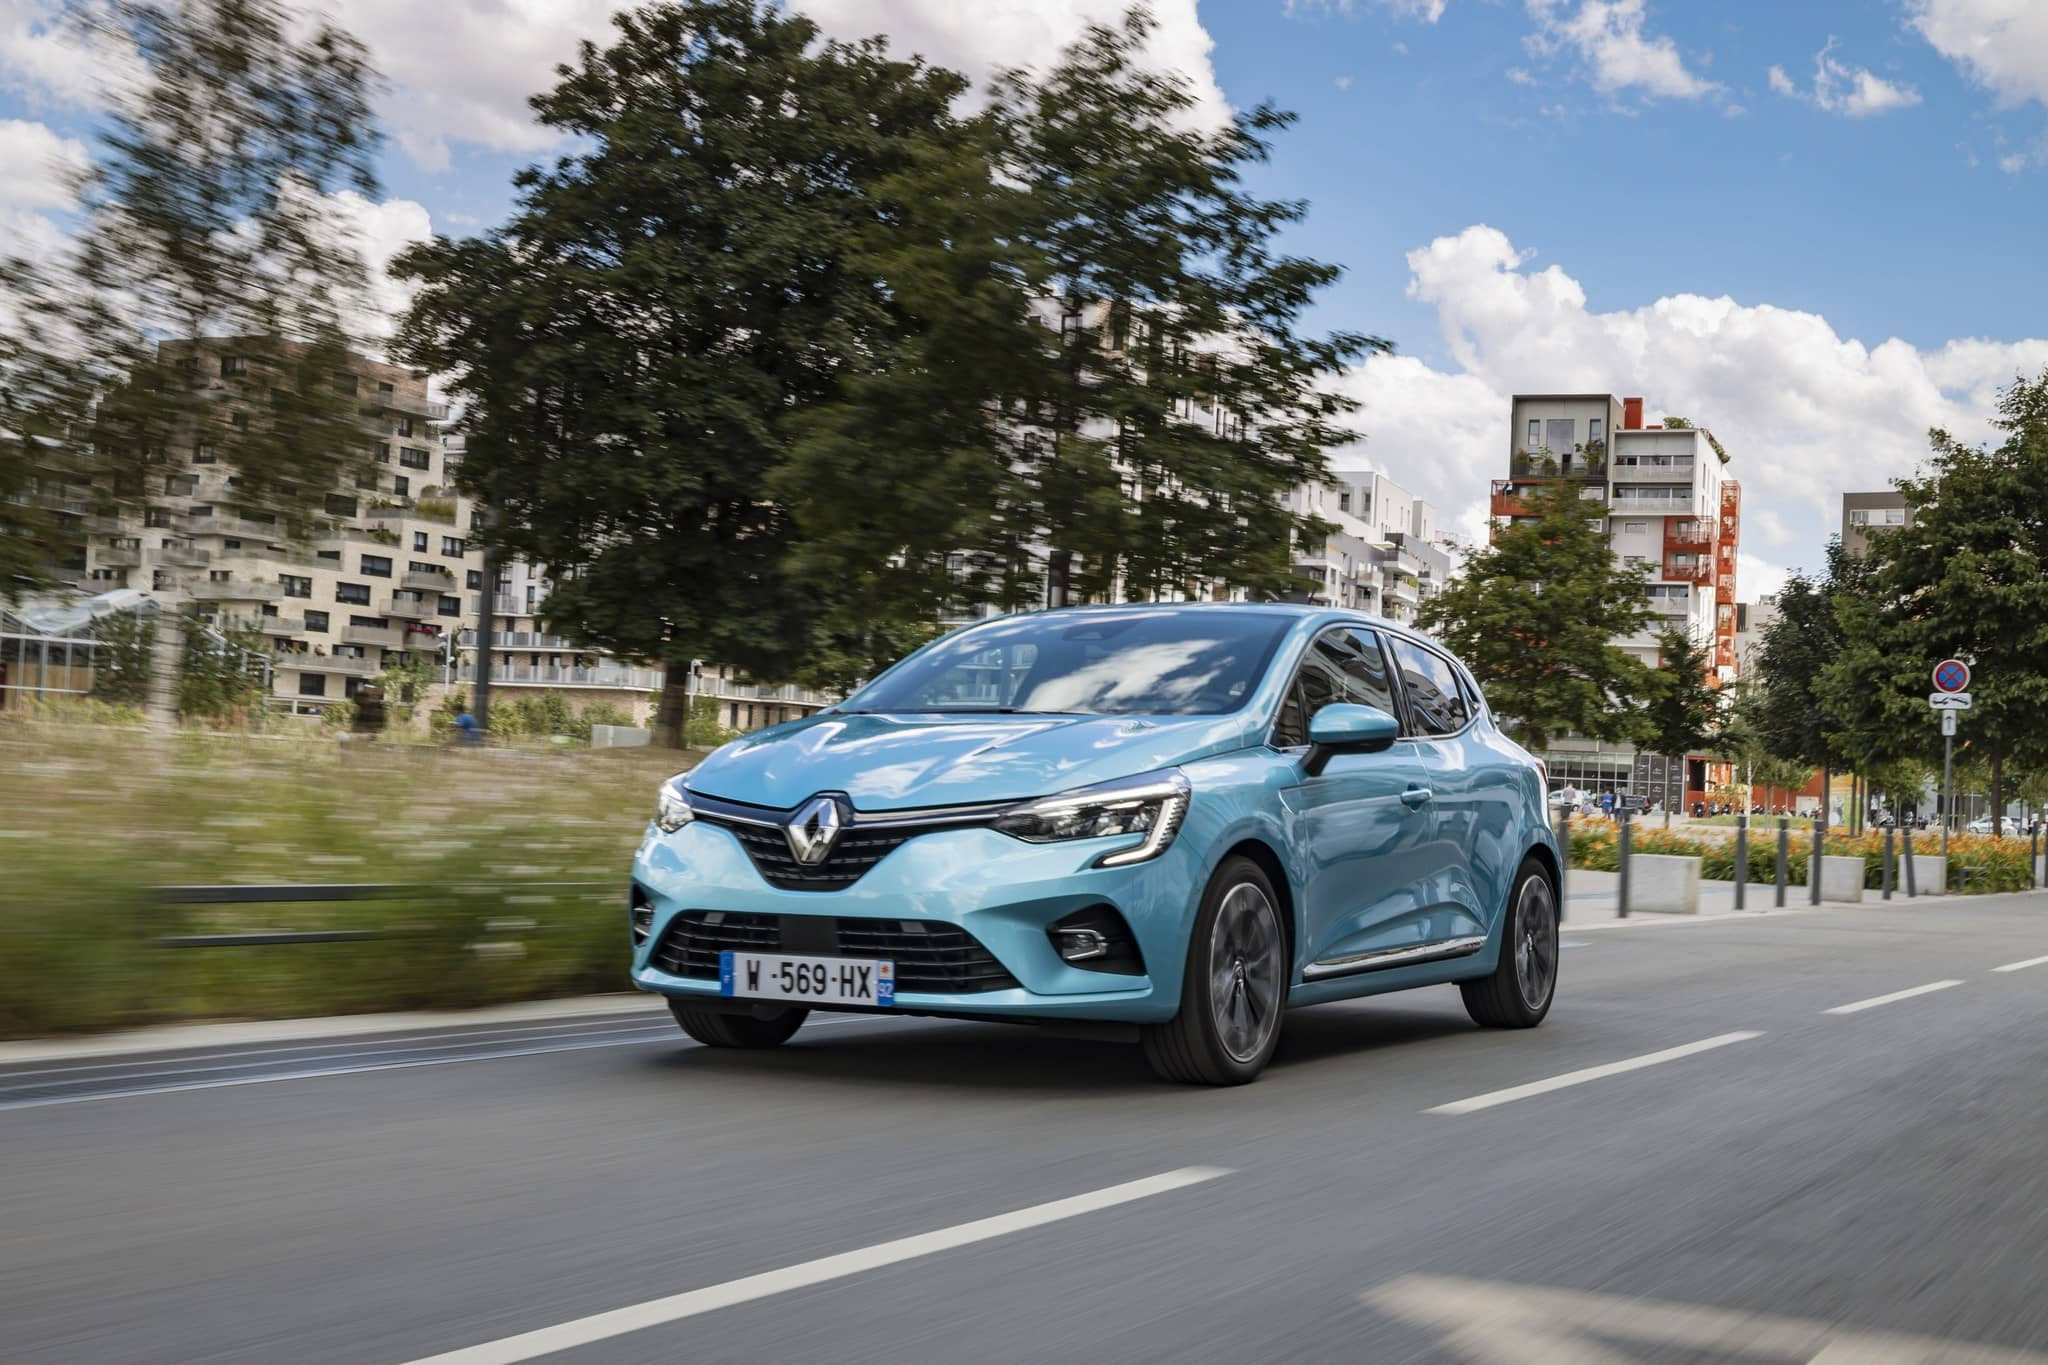 mini-2020 – Renault CLIO E-TECH tests drive (7)